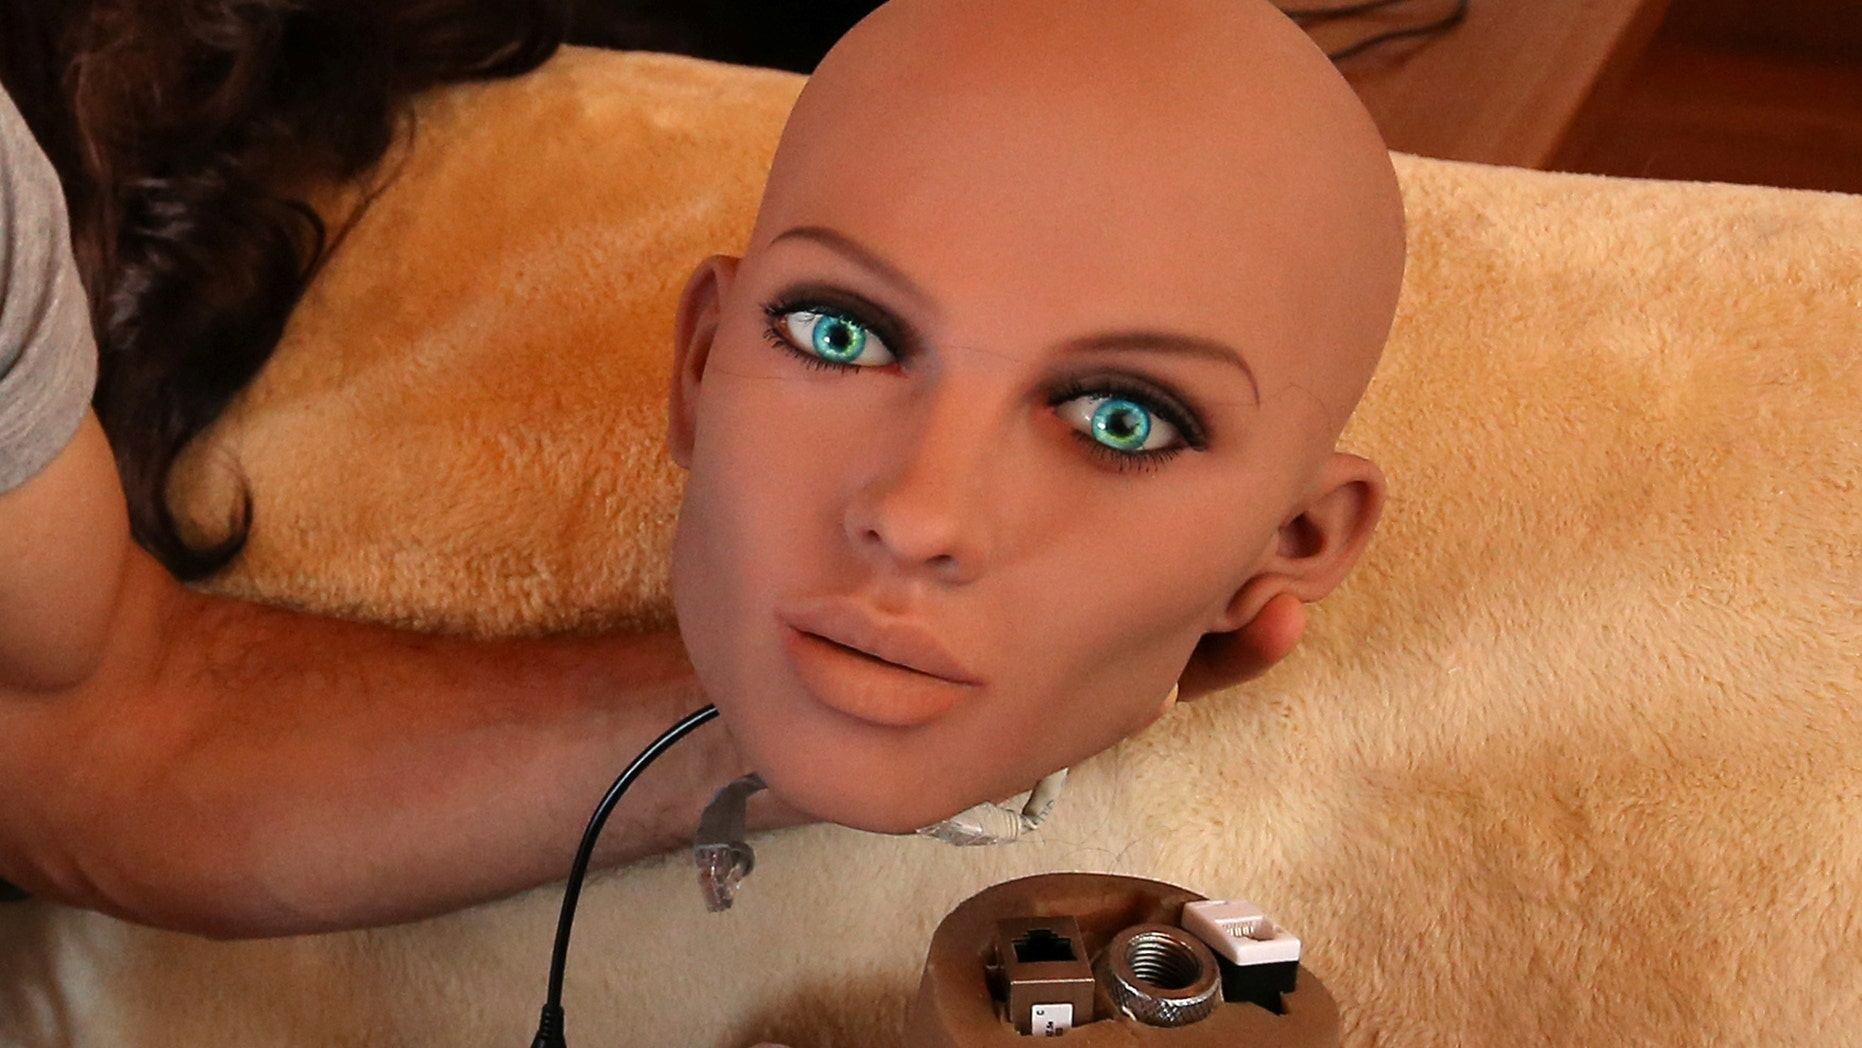 File photo: Catalan nanotechnology engineer Sergi Santos holds the head of Samantha, a sex doll packed with artificial intelligence providing her the capability to respond to different scenarios and verbal stimulus, in his house in Rubi, north of Barcelona, Spain, March 31, 2017. Picture taken March 31, 2017. (REUTERS/Albert Gea)